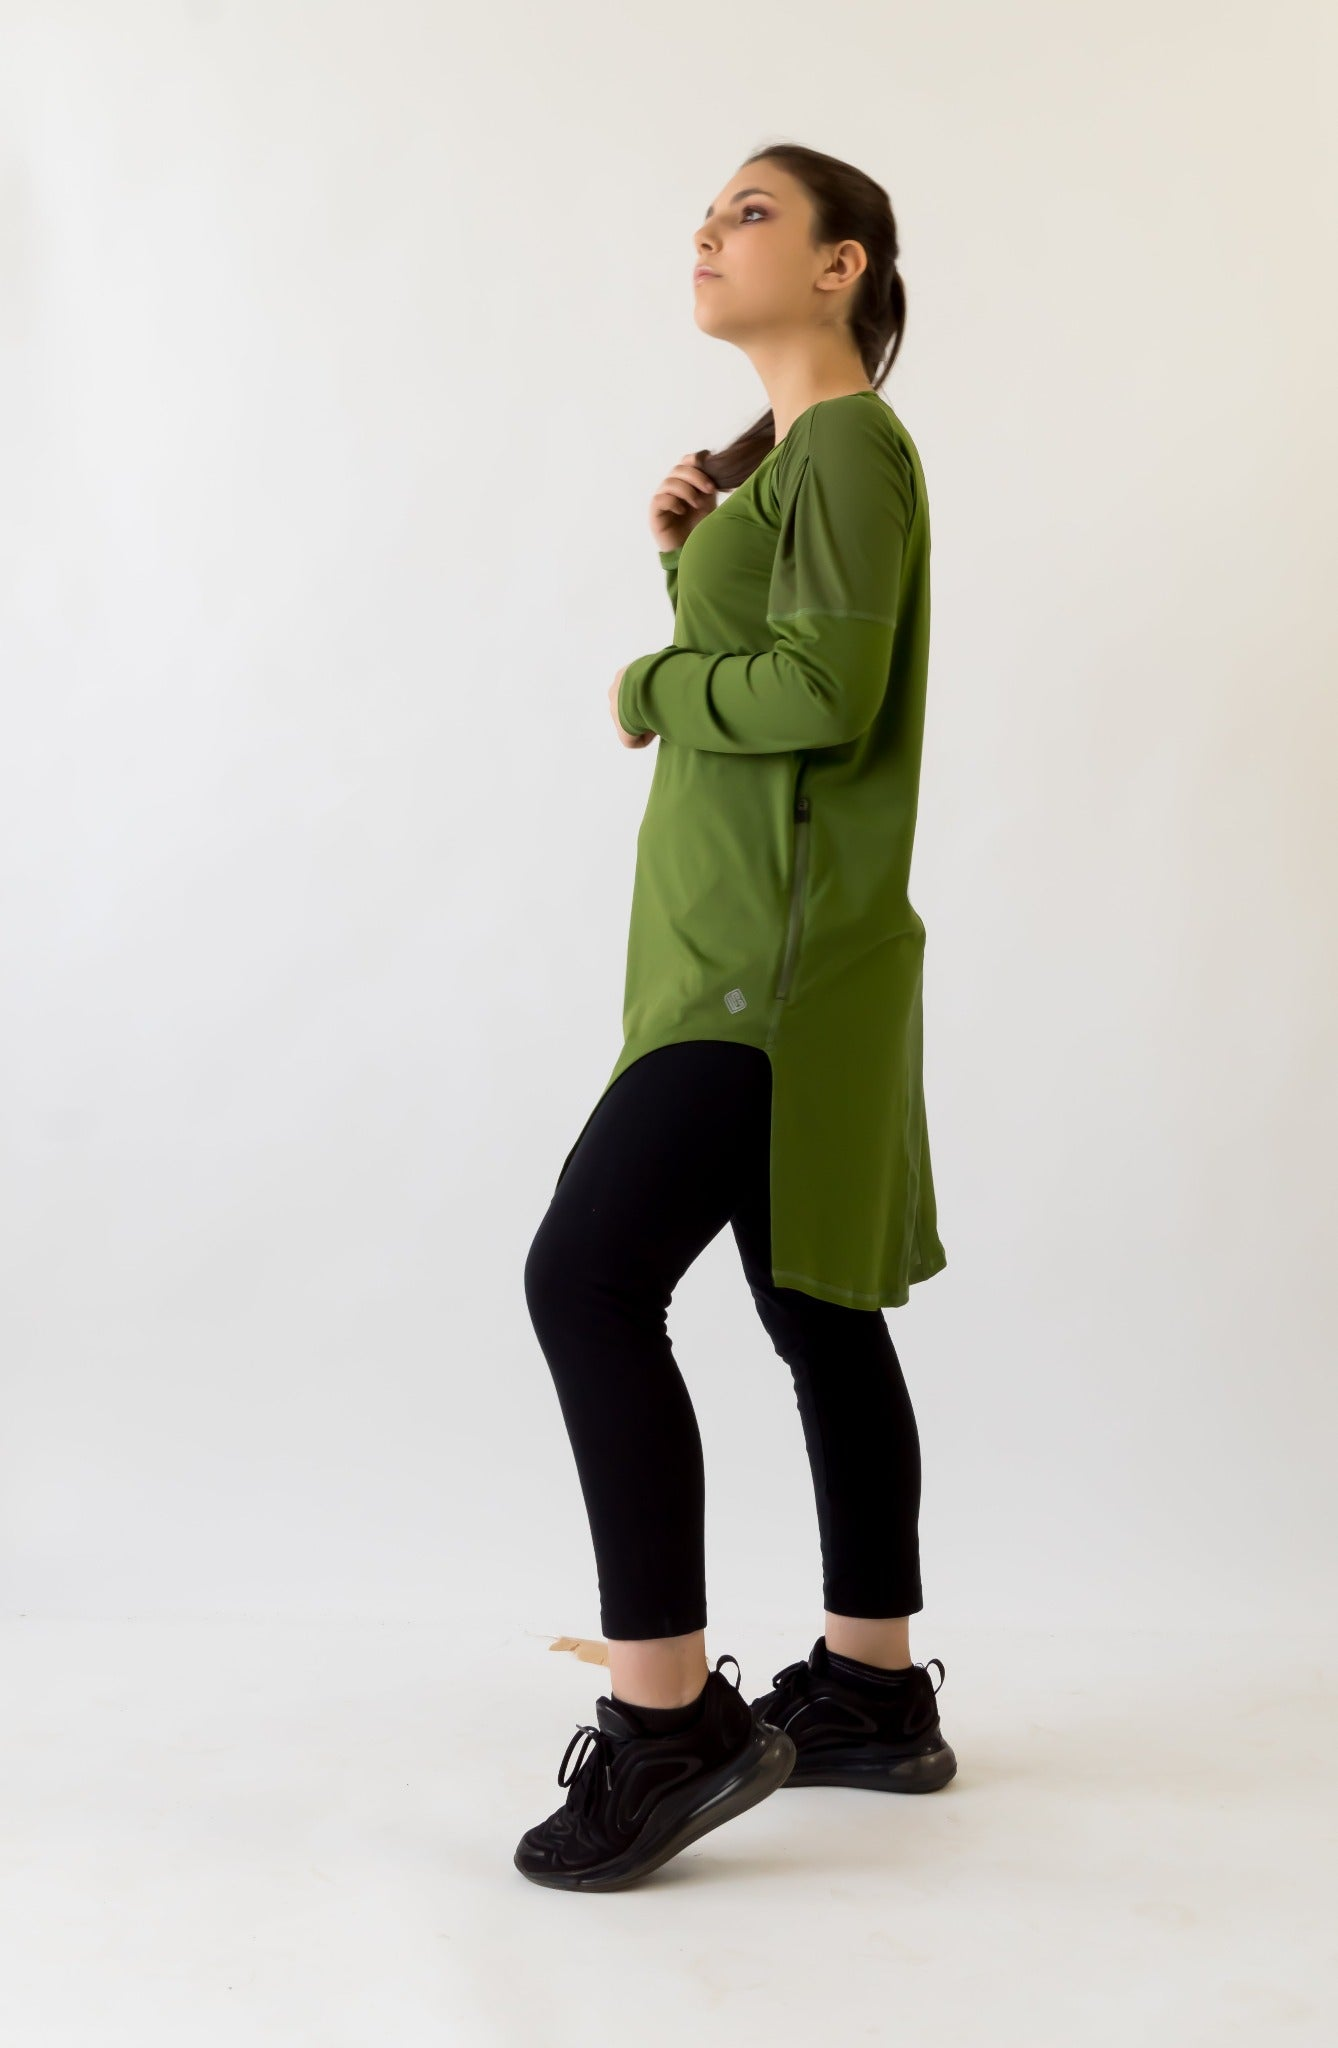 Modest activewear | Modest sportswear | Mumine Activewear